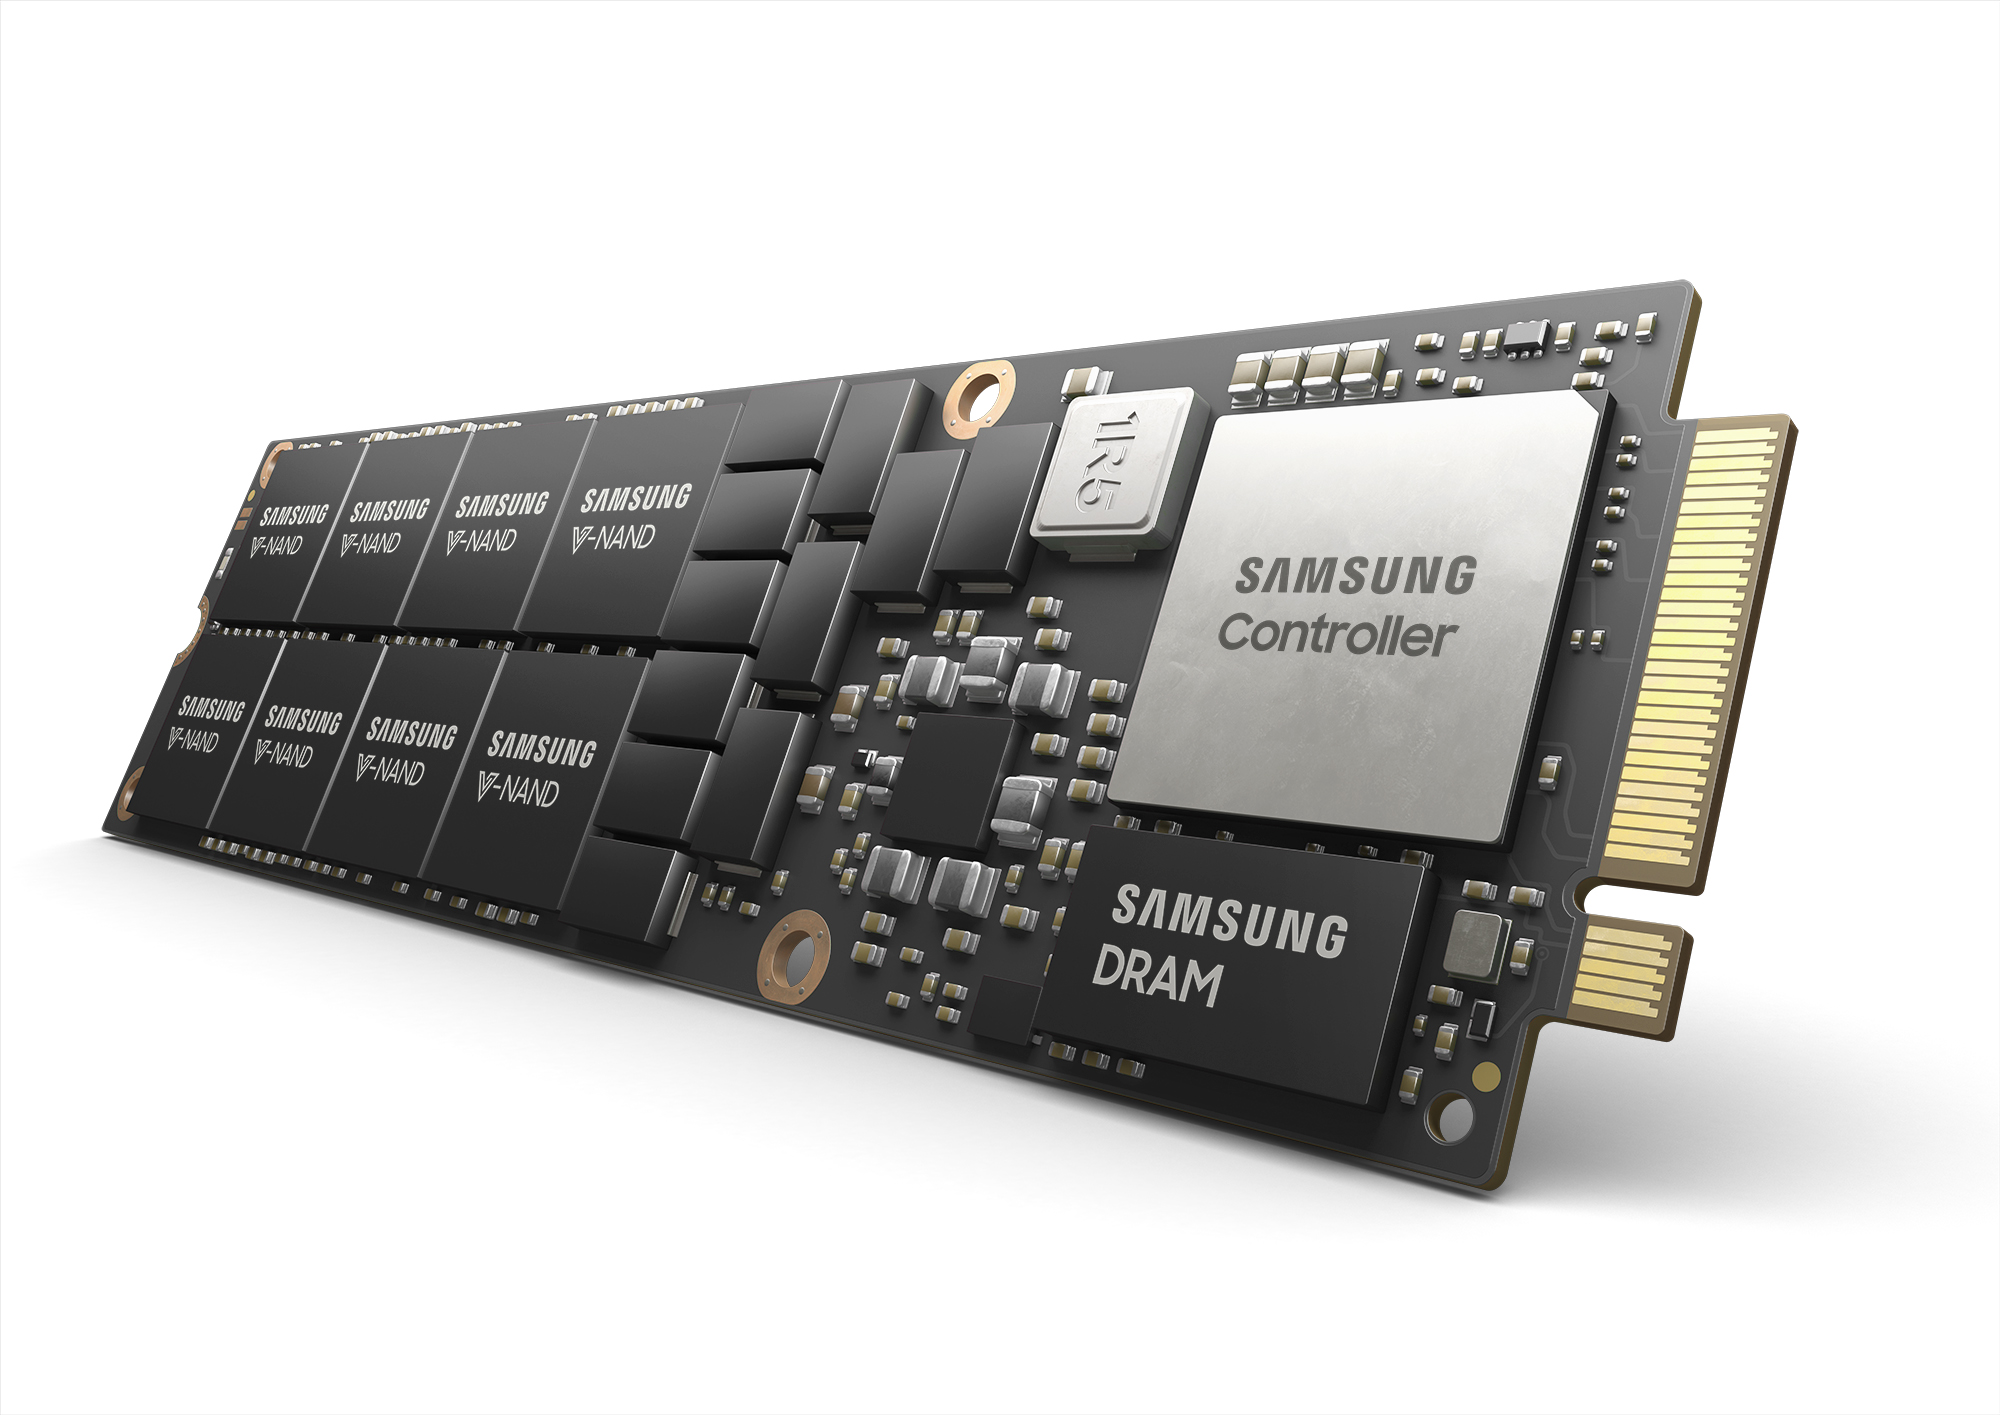 Illustration of a NF1 8TB NVMe SSD